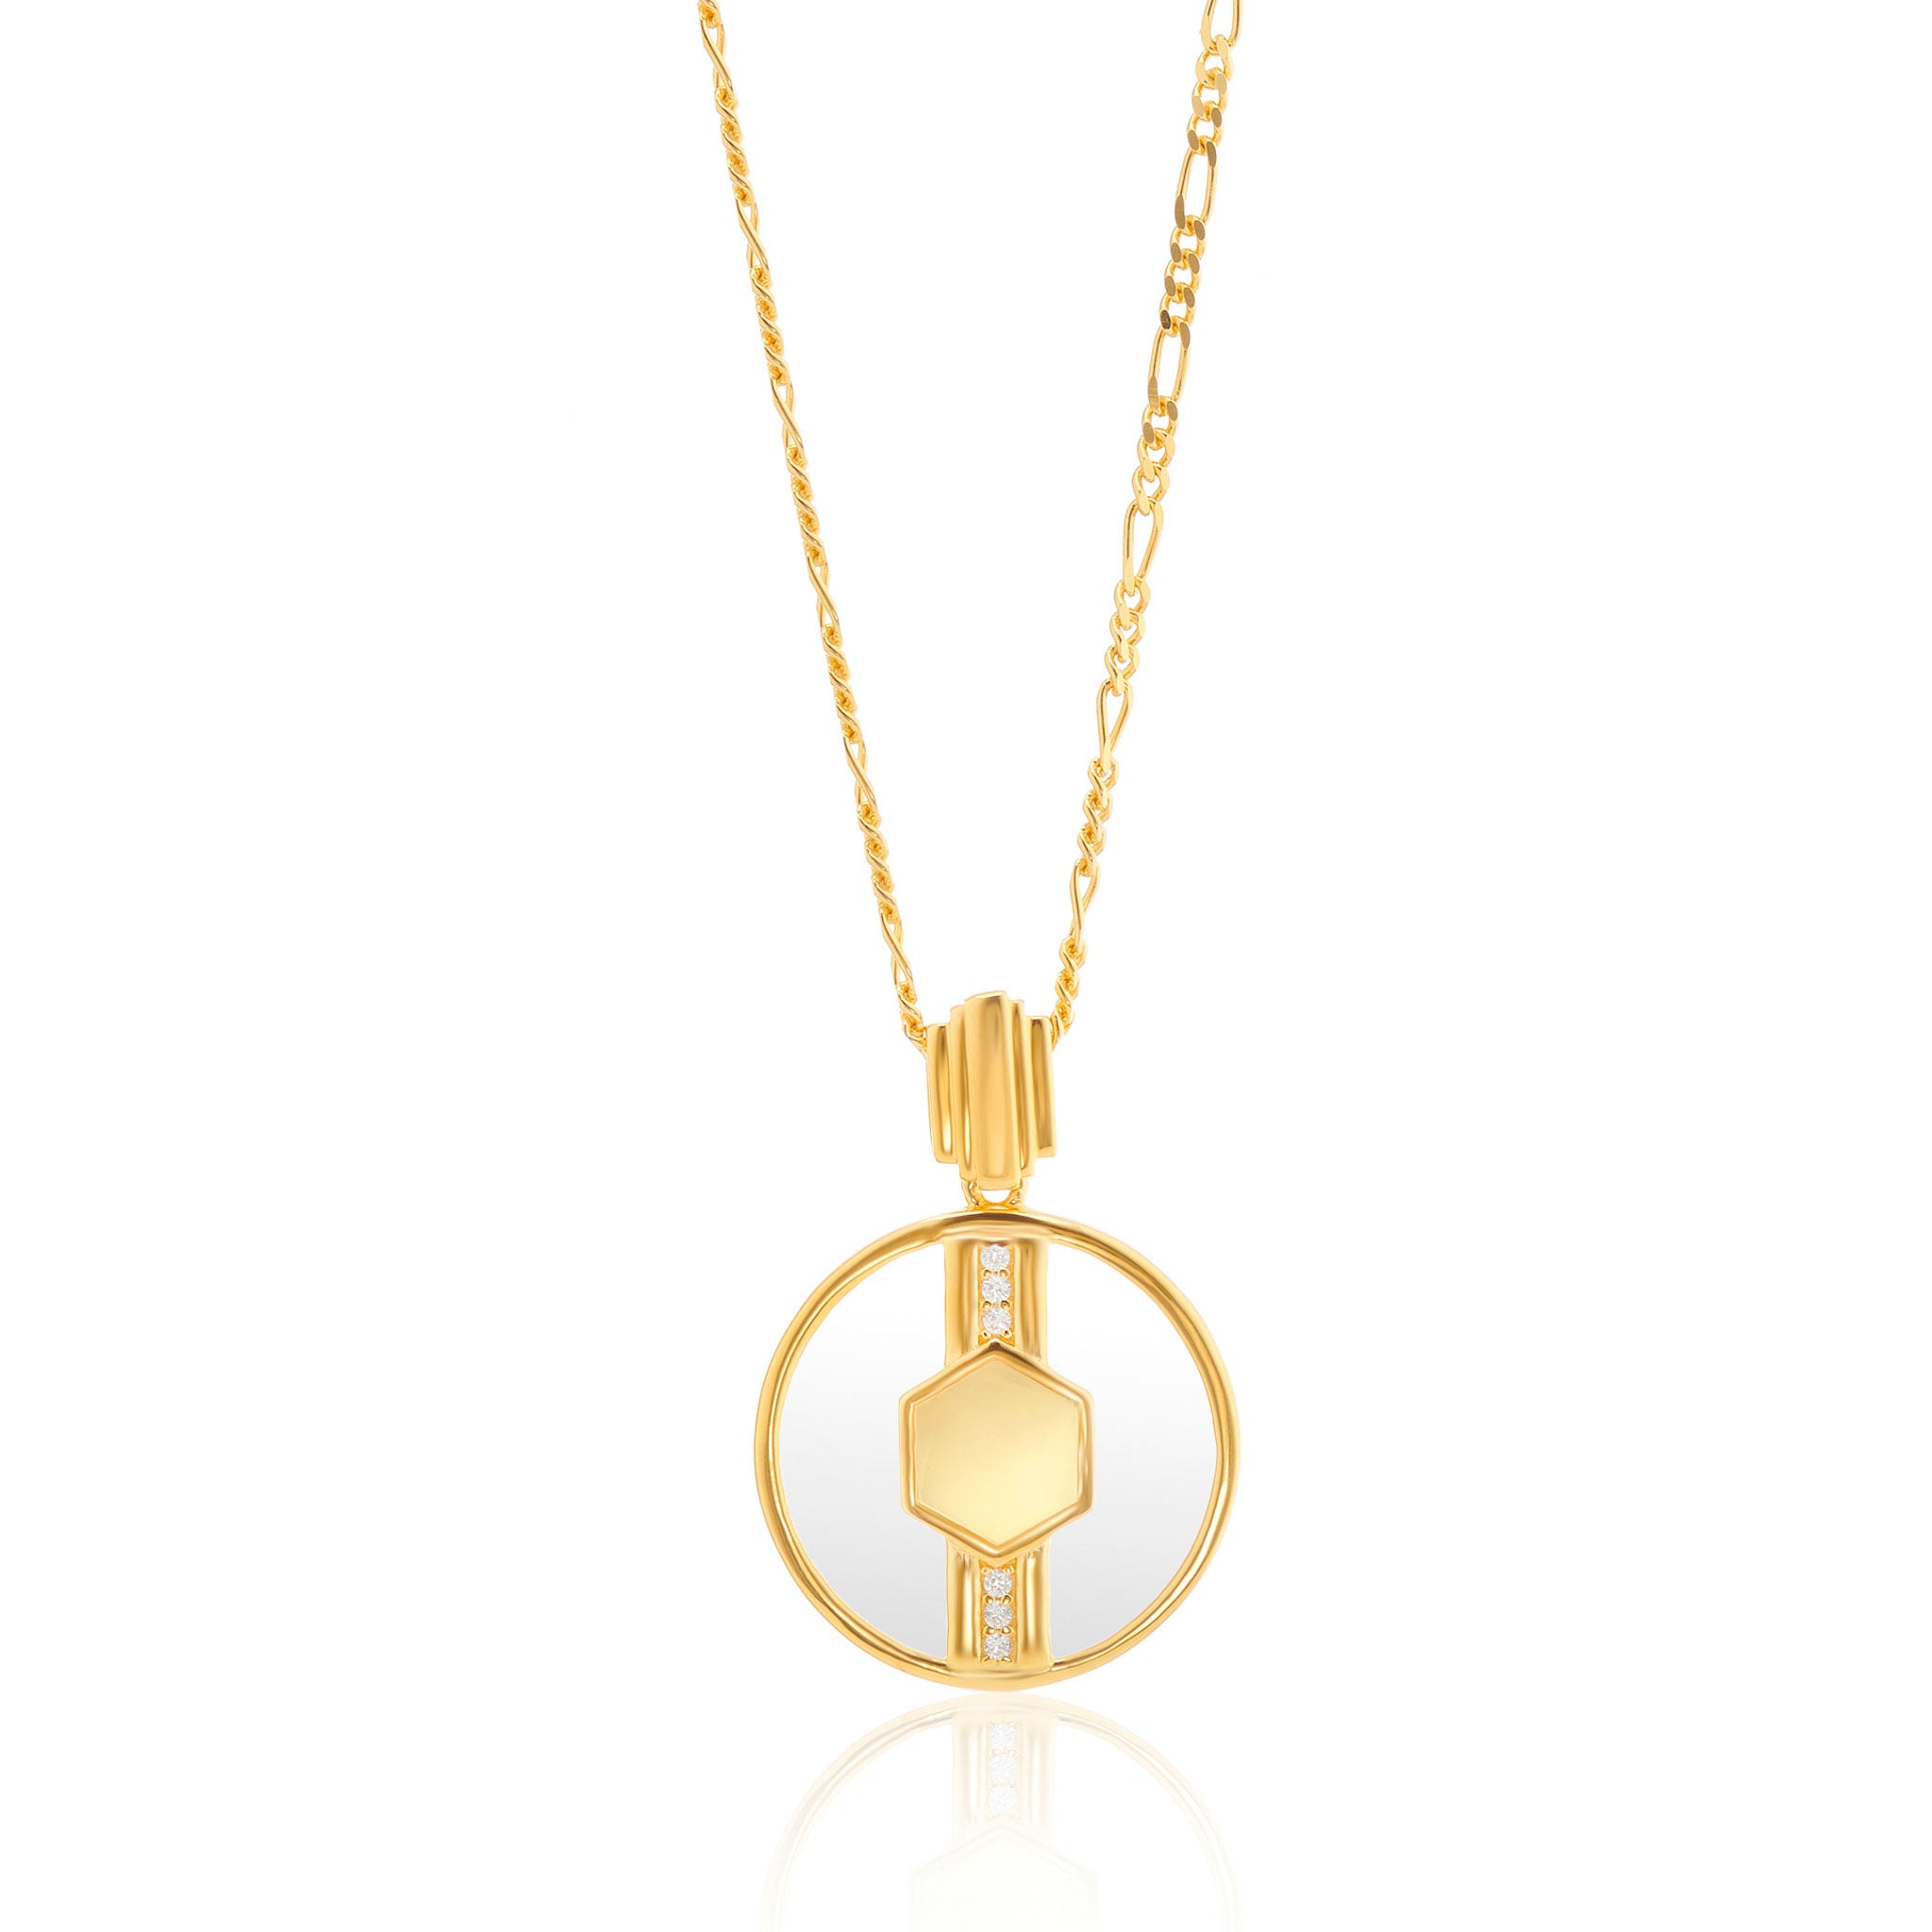 Cindy Glass Necklace in Gold